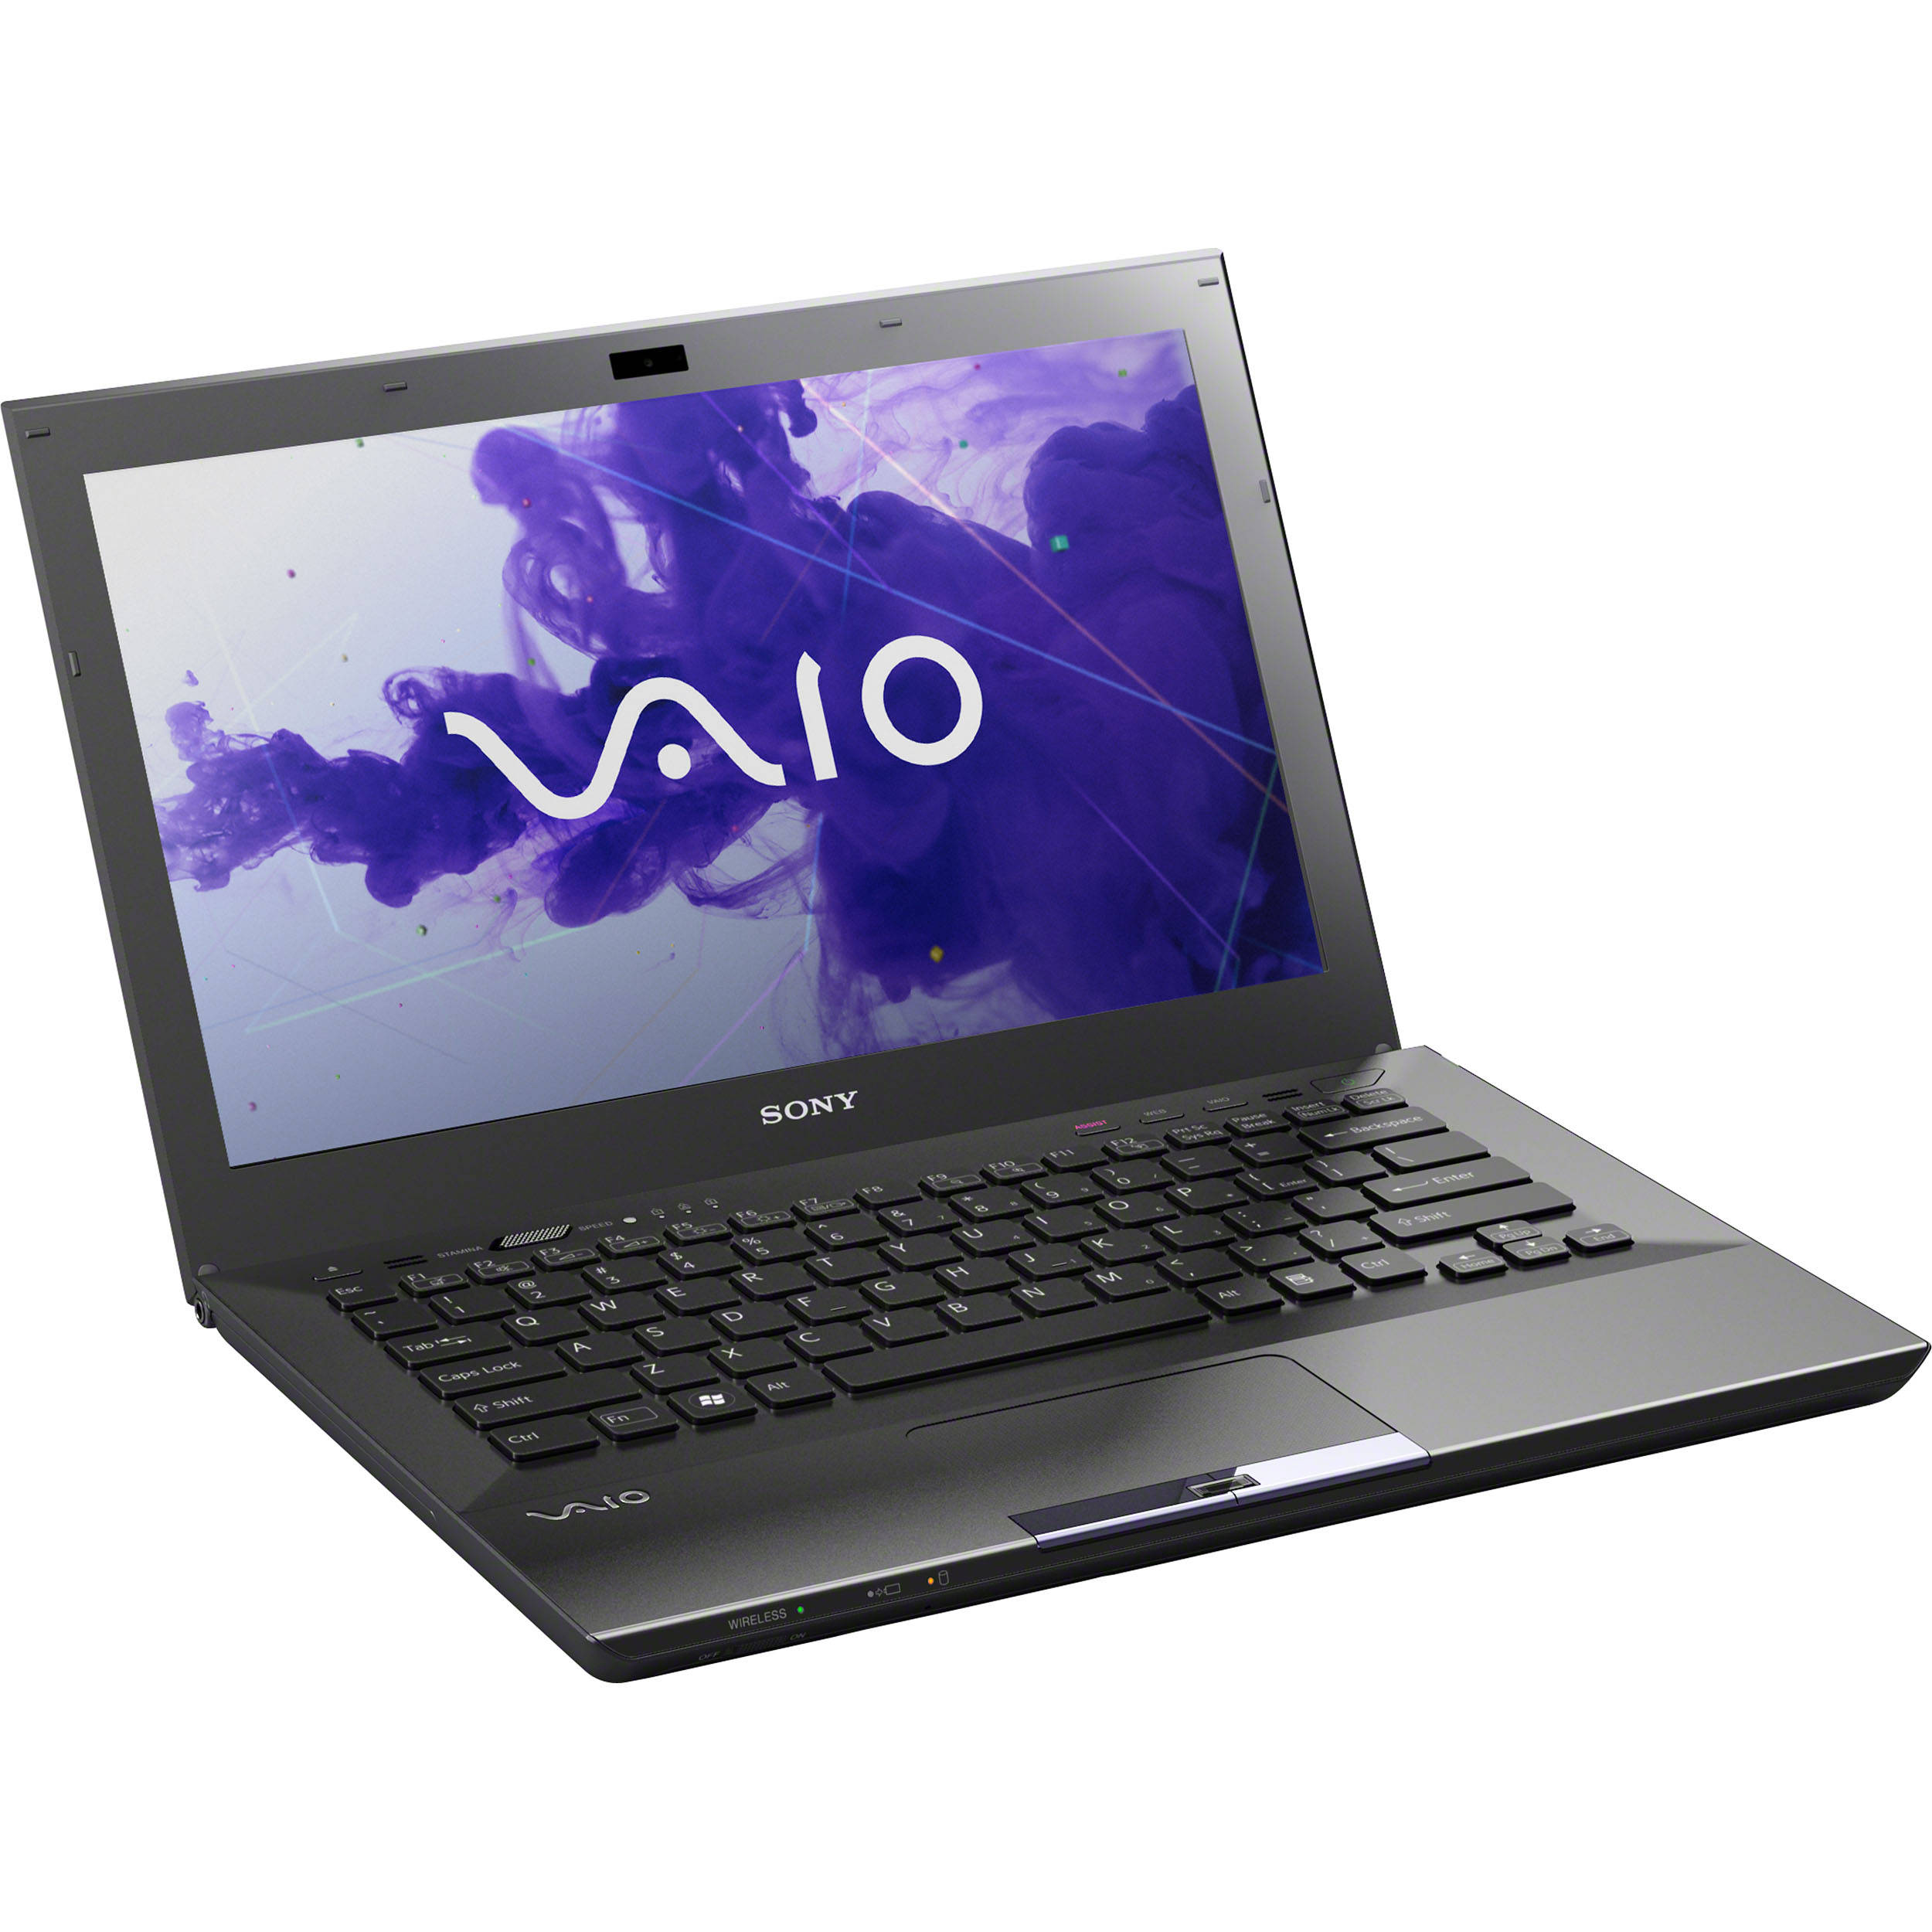 Sony Vaio VPCSA45GX/BI Intel WiDi Windows 8